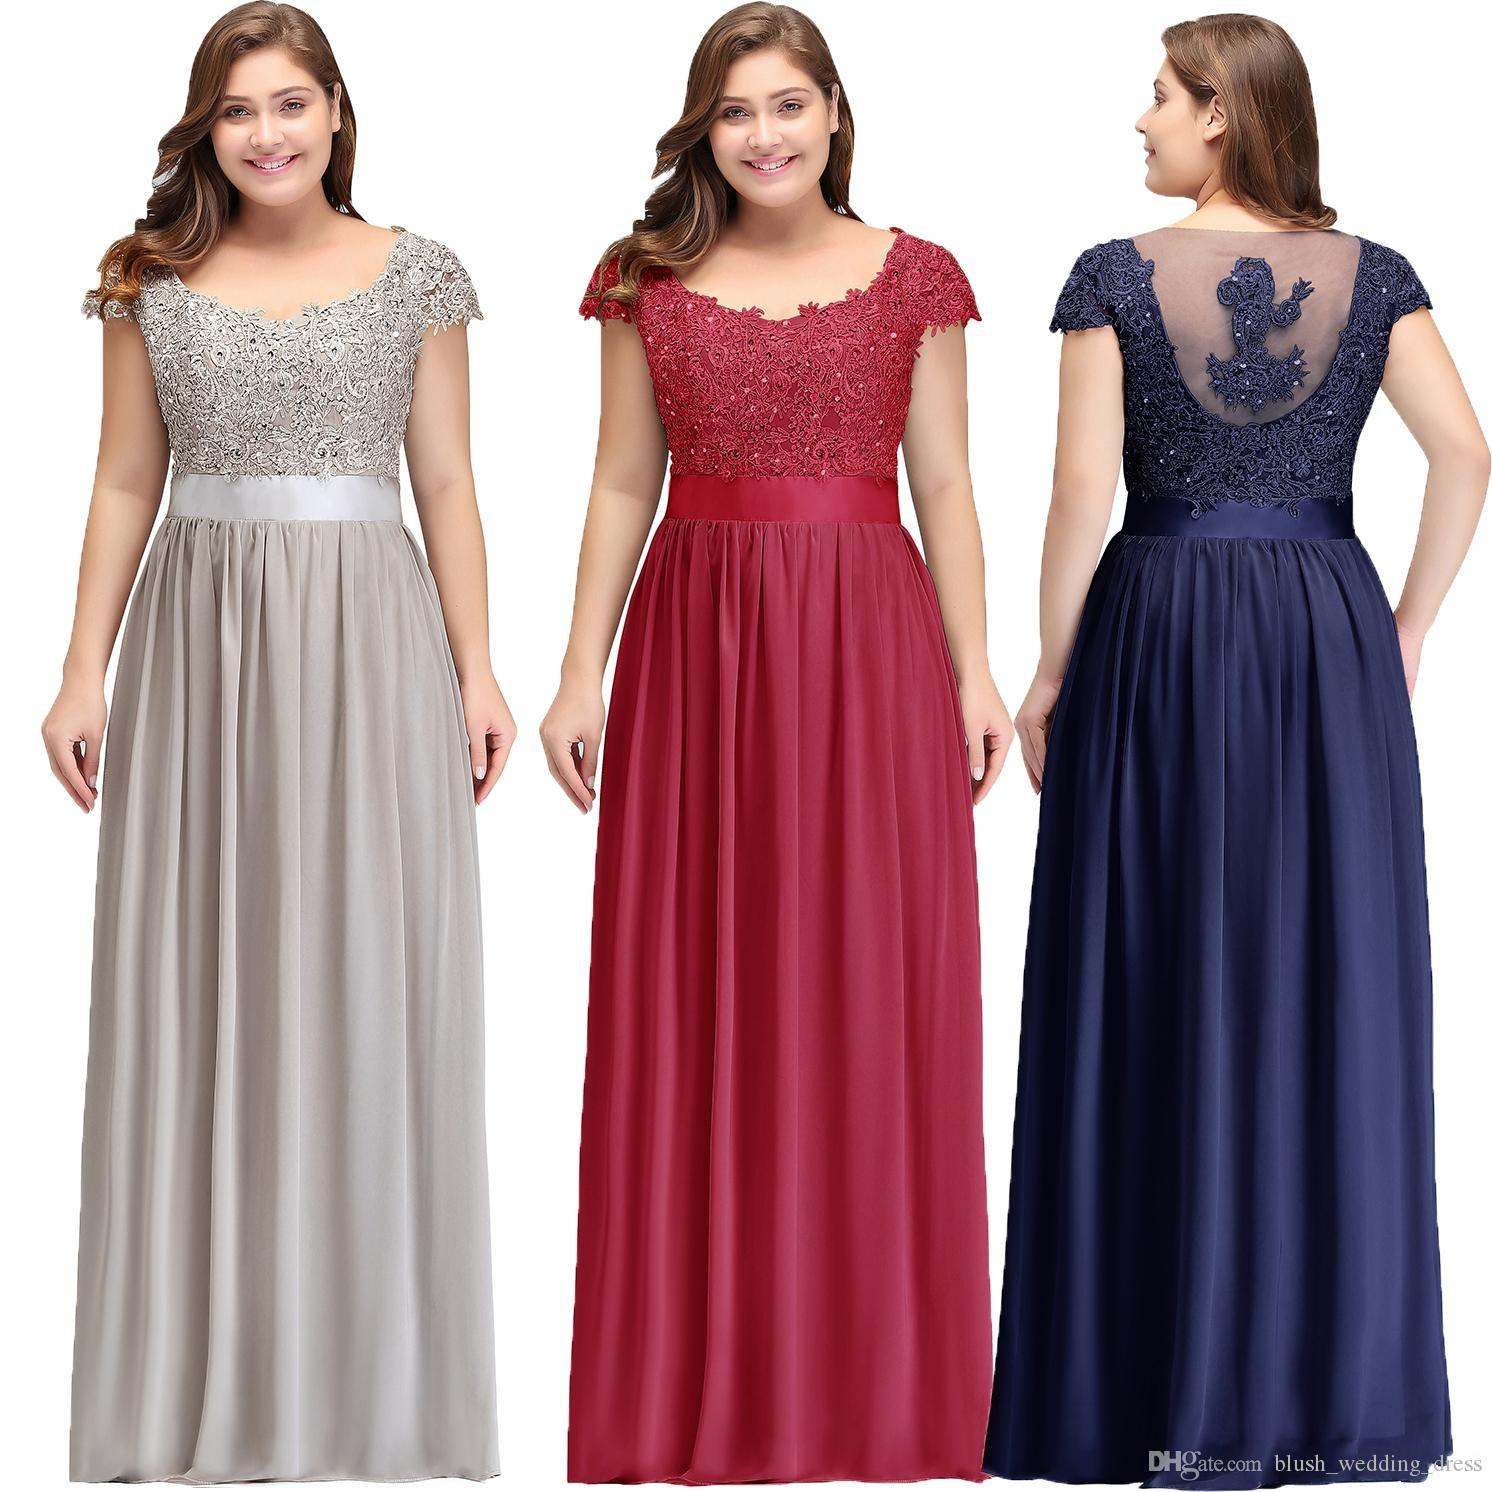 1d8629e5dd Custom Plus Size Cap Sleeves Chiffon Bridesmaid Dresses Floor Length Lace  Applique Formal Evening Party Dresses Maid Of Honor Gowns Pregnant  Bridesmaid ...